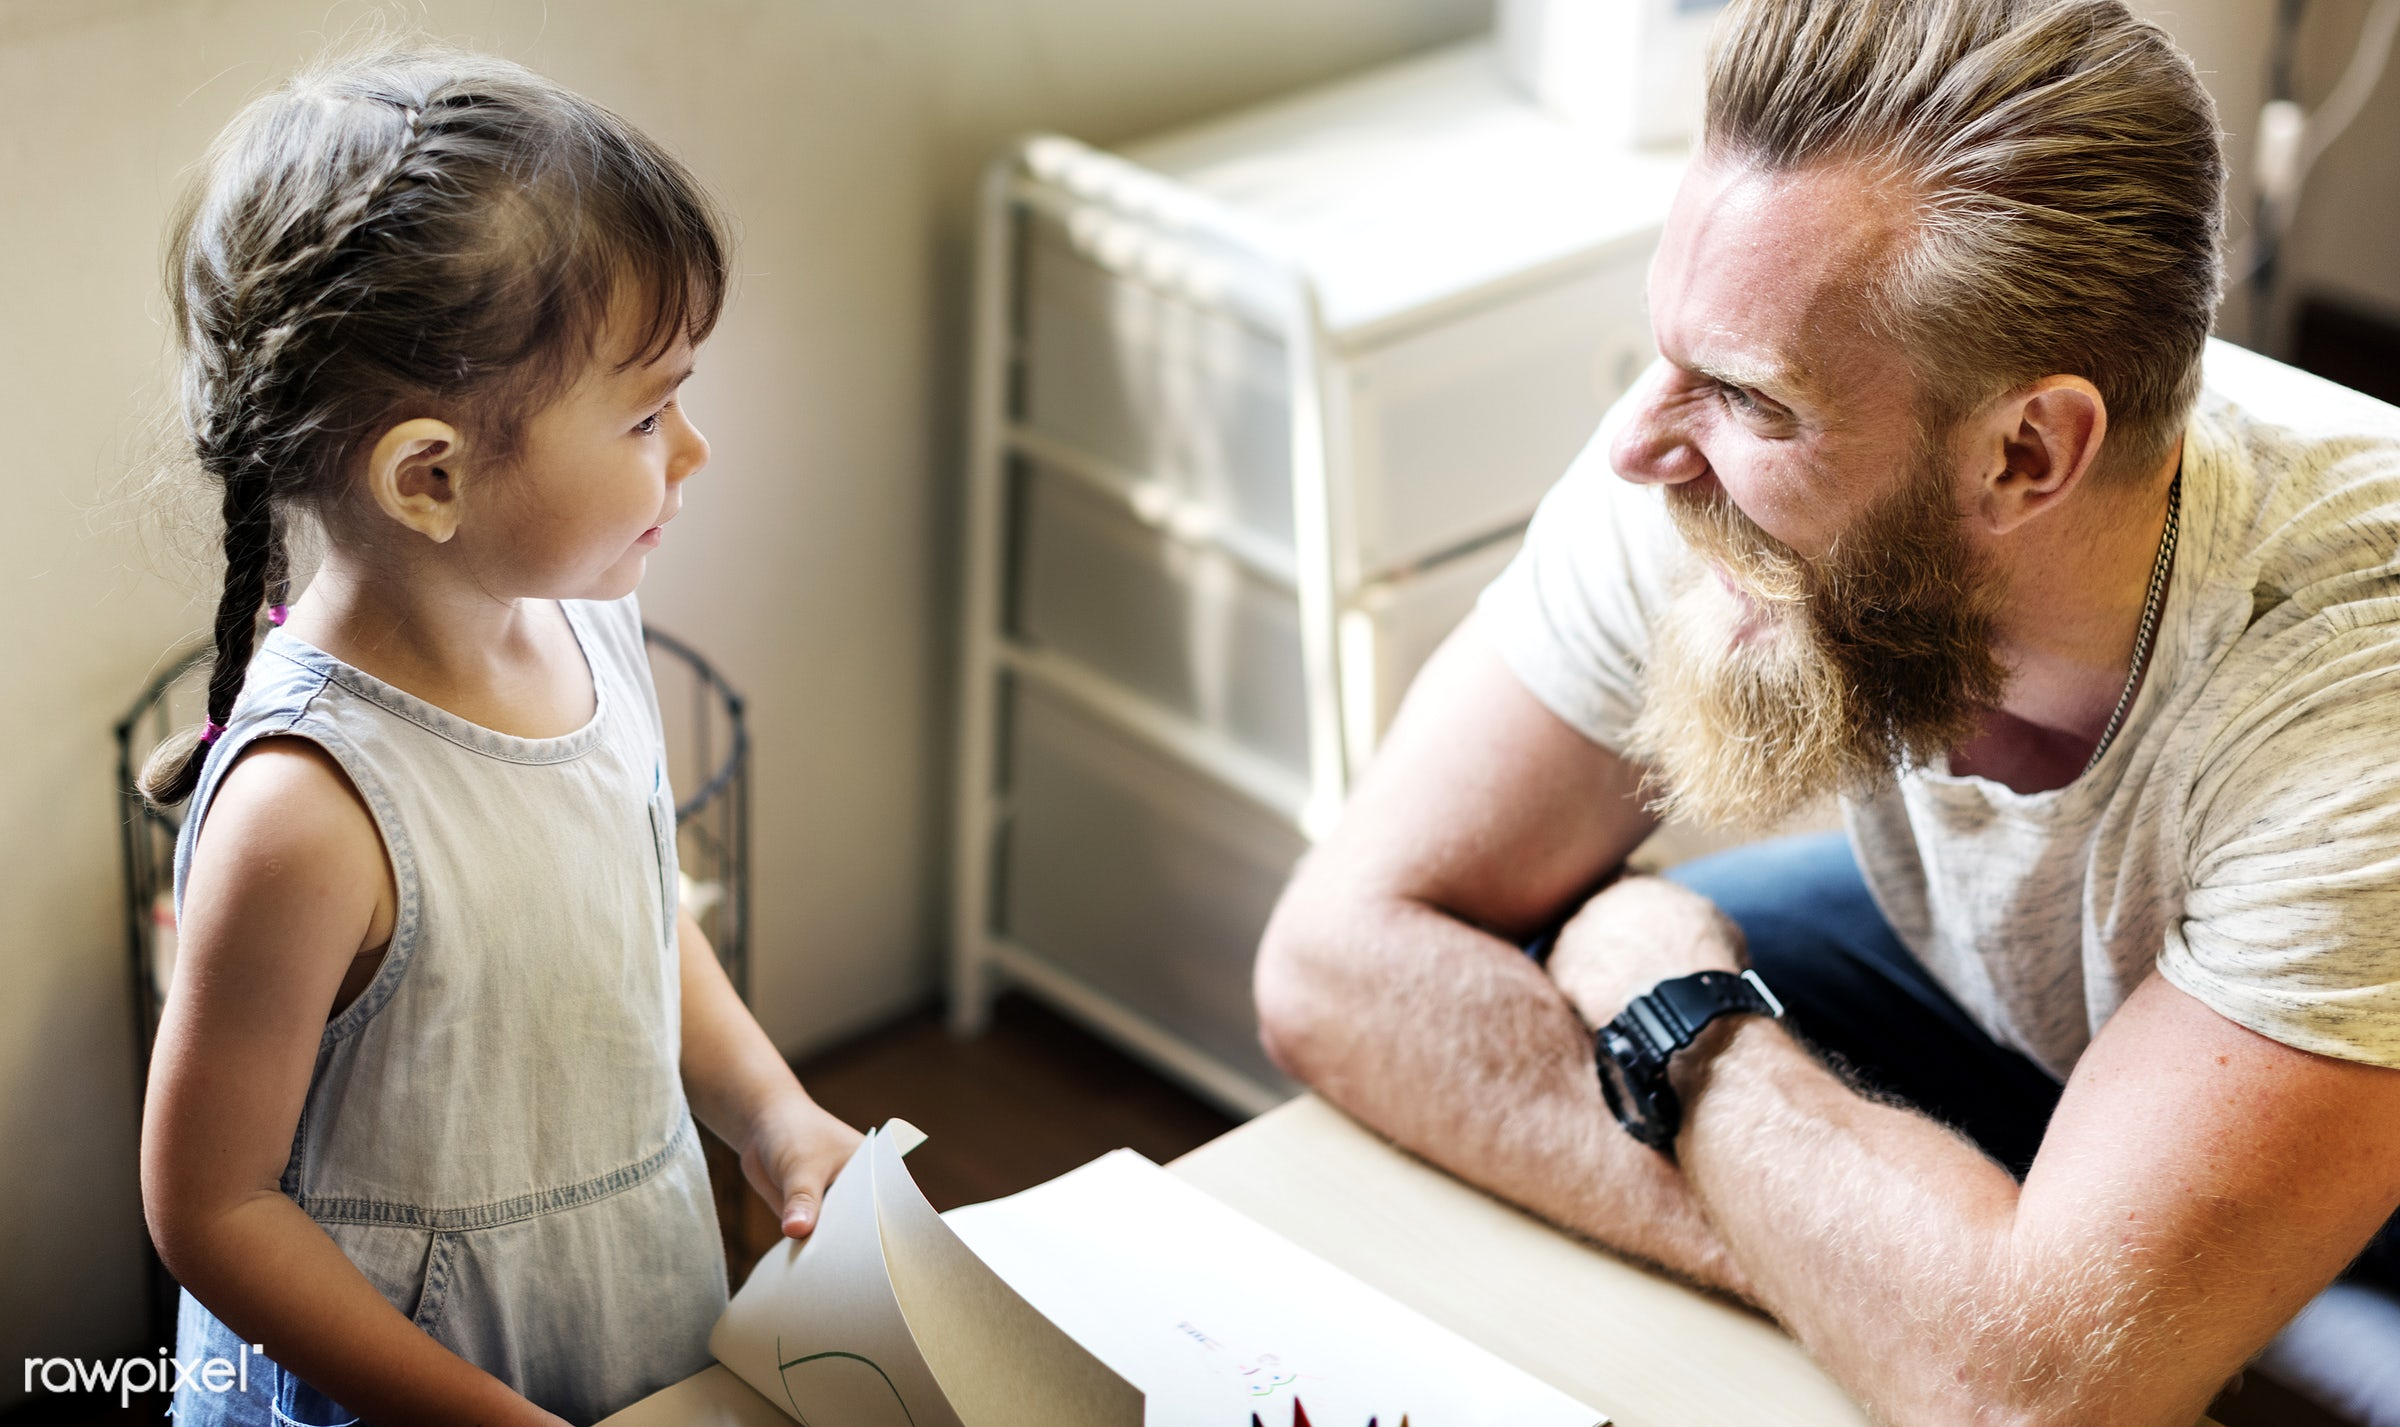 adult, asian, at home, beard, caucasian, cheerful, child, childhood, communication, connection, dad, daughter, emotion,...